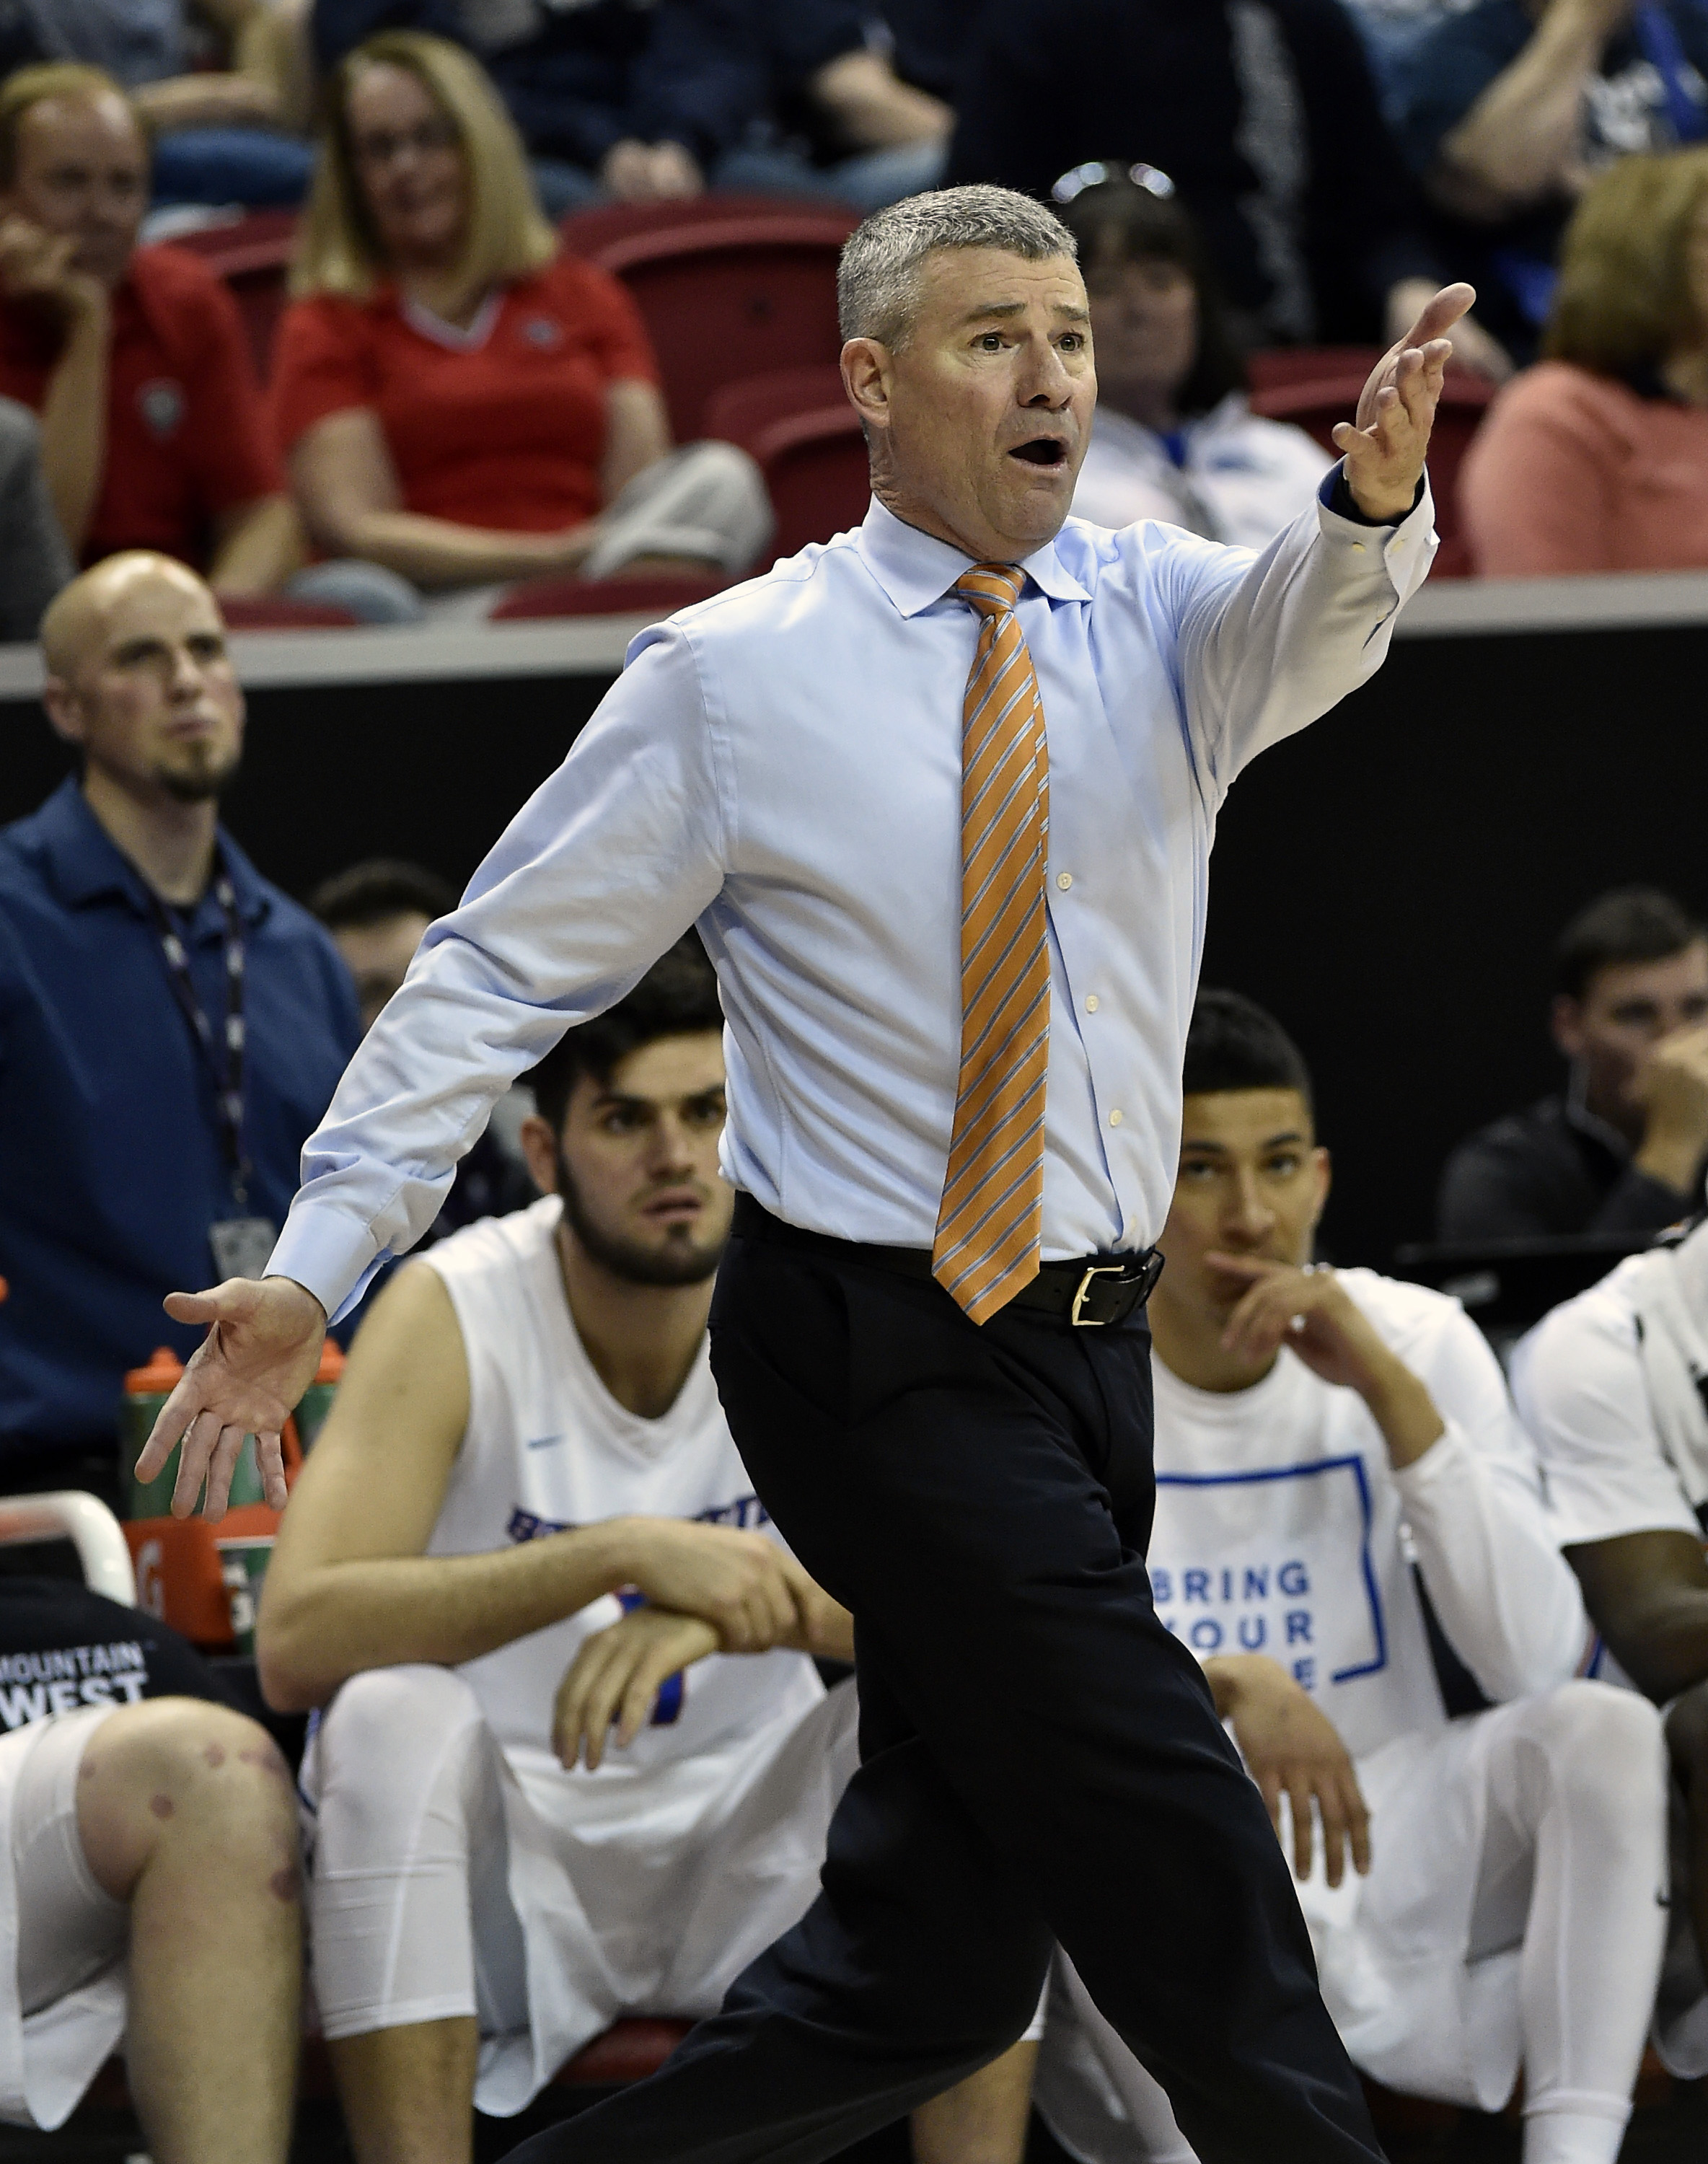 Boise State coach Leon Rice reacts to a call during the second half of the team's NCAA college basketball game against Colorado State in the Mountain West Conference men's tournament Thursday, March 10, 2016, in Las Vegas. Colorado State won 88-81. (AP Ph